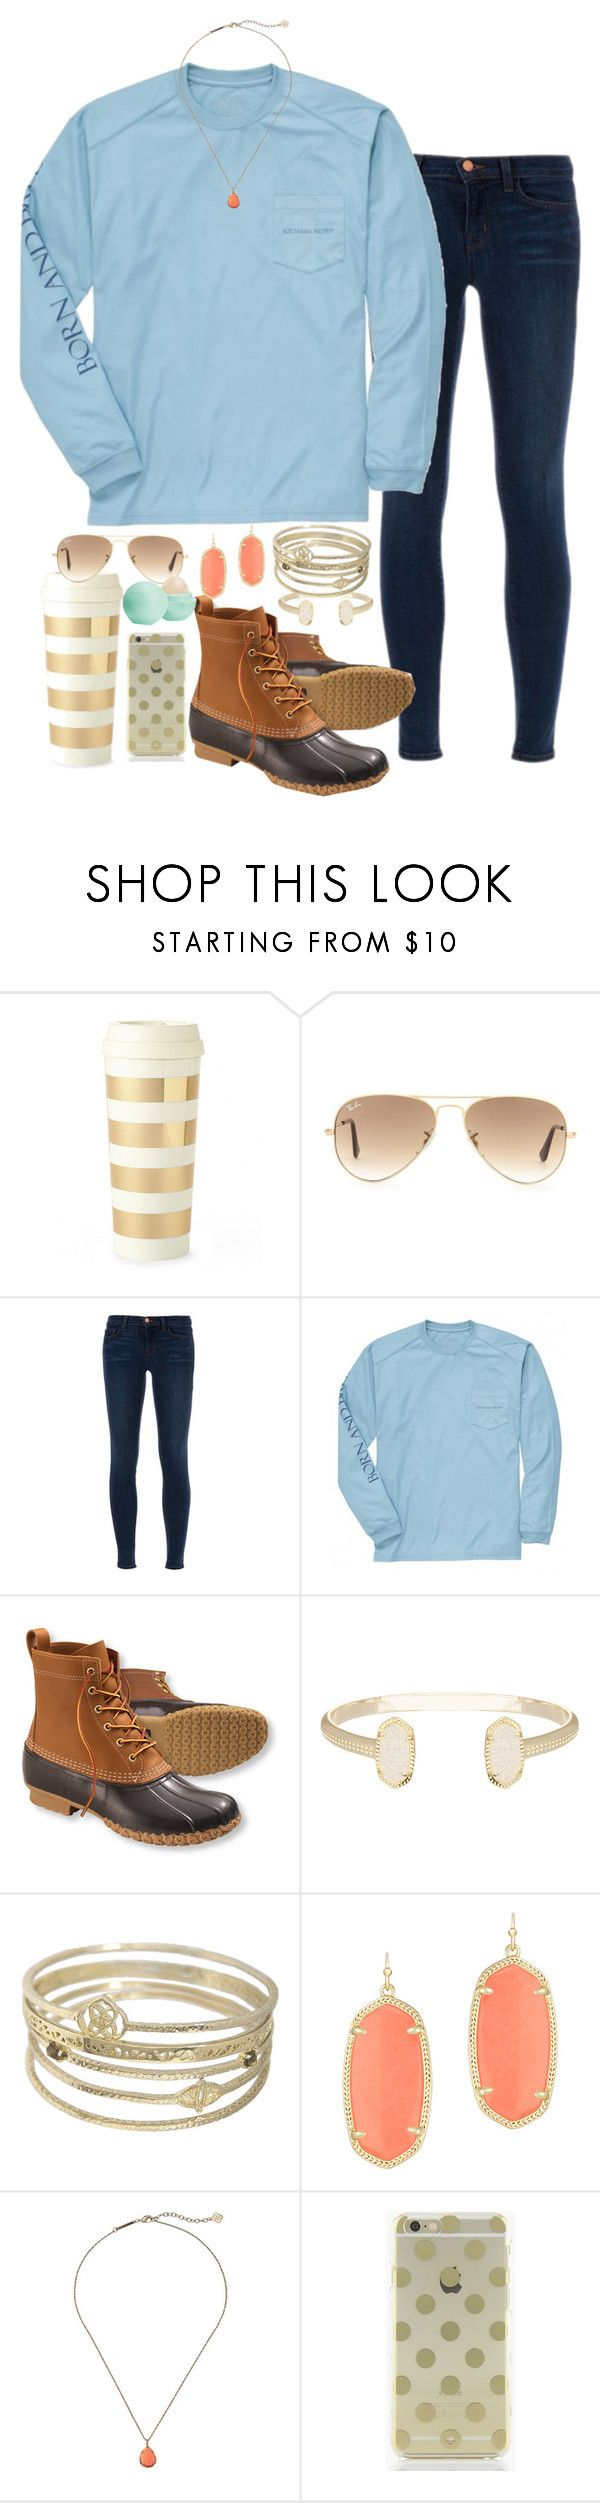 """""""#sevendaysinfall contest, day 4"""" by emilyw01 ❤ liked on Polyvore featuring Kate Spade, Ray-Ban, J Brand, Southern Proper, L.L.Bean, Kendra Scott, Eos and sevendaysinfall"""